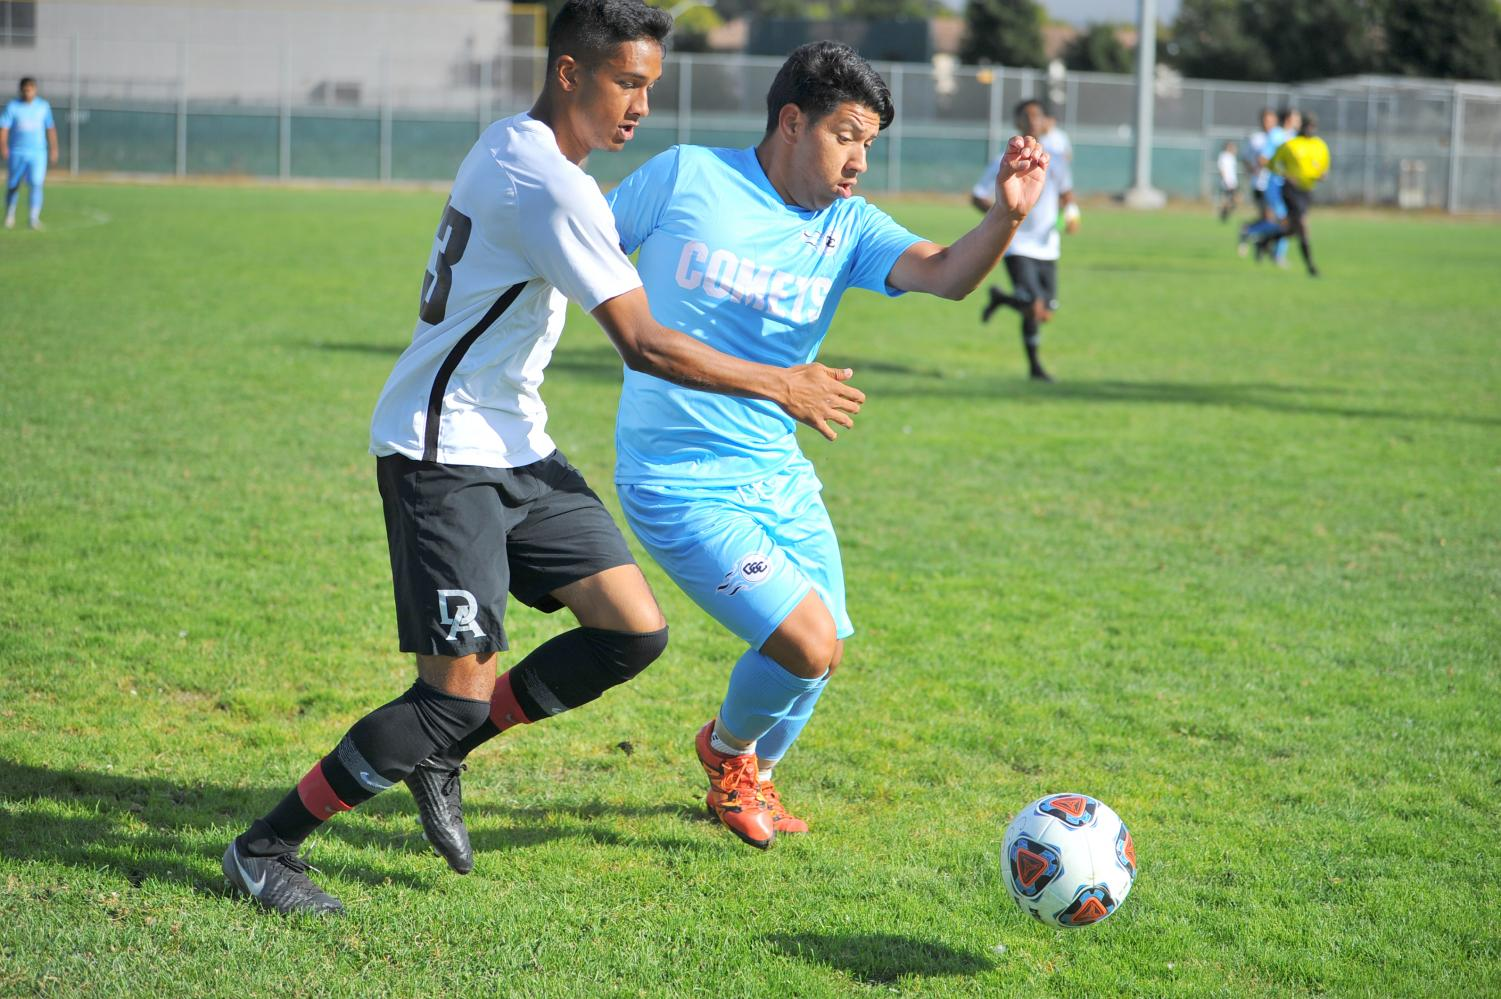 Comet midfielder Victor Rodriguez tackles a De Anza College midfielder during Contra Costa College's 2-0 loss on Friday on the Soccer Field.